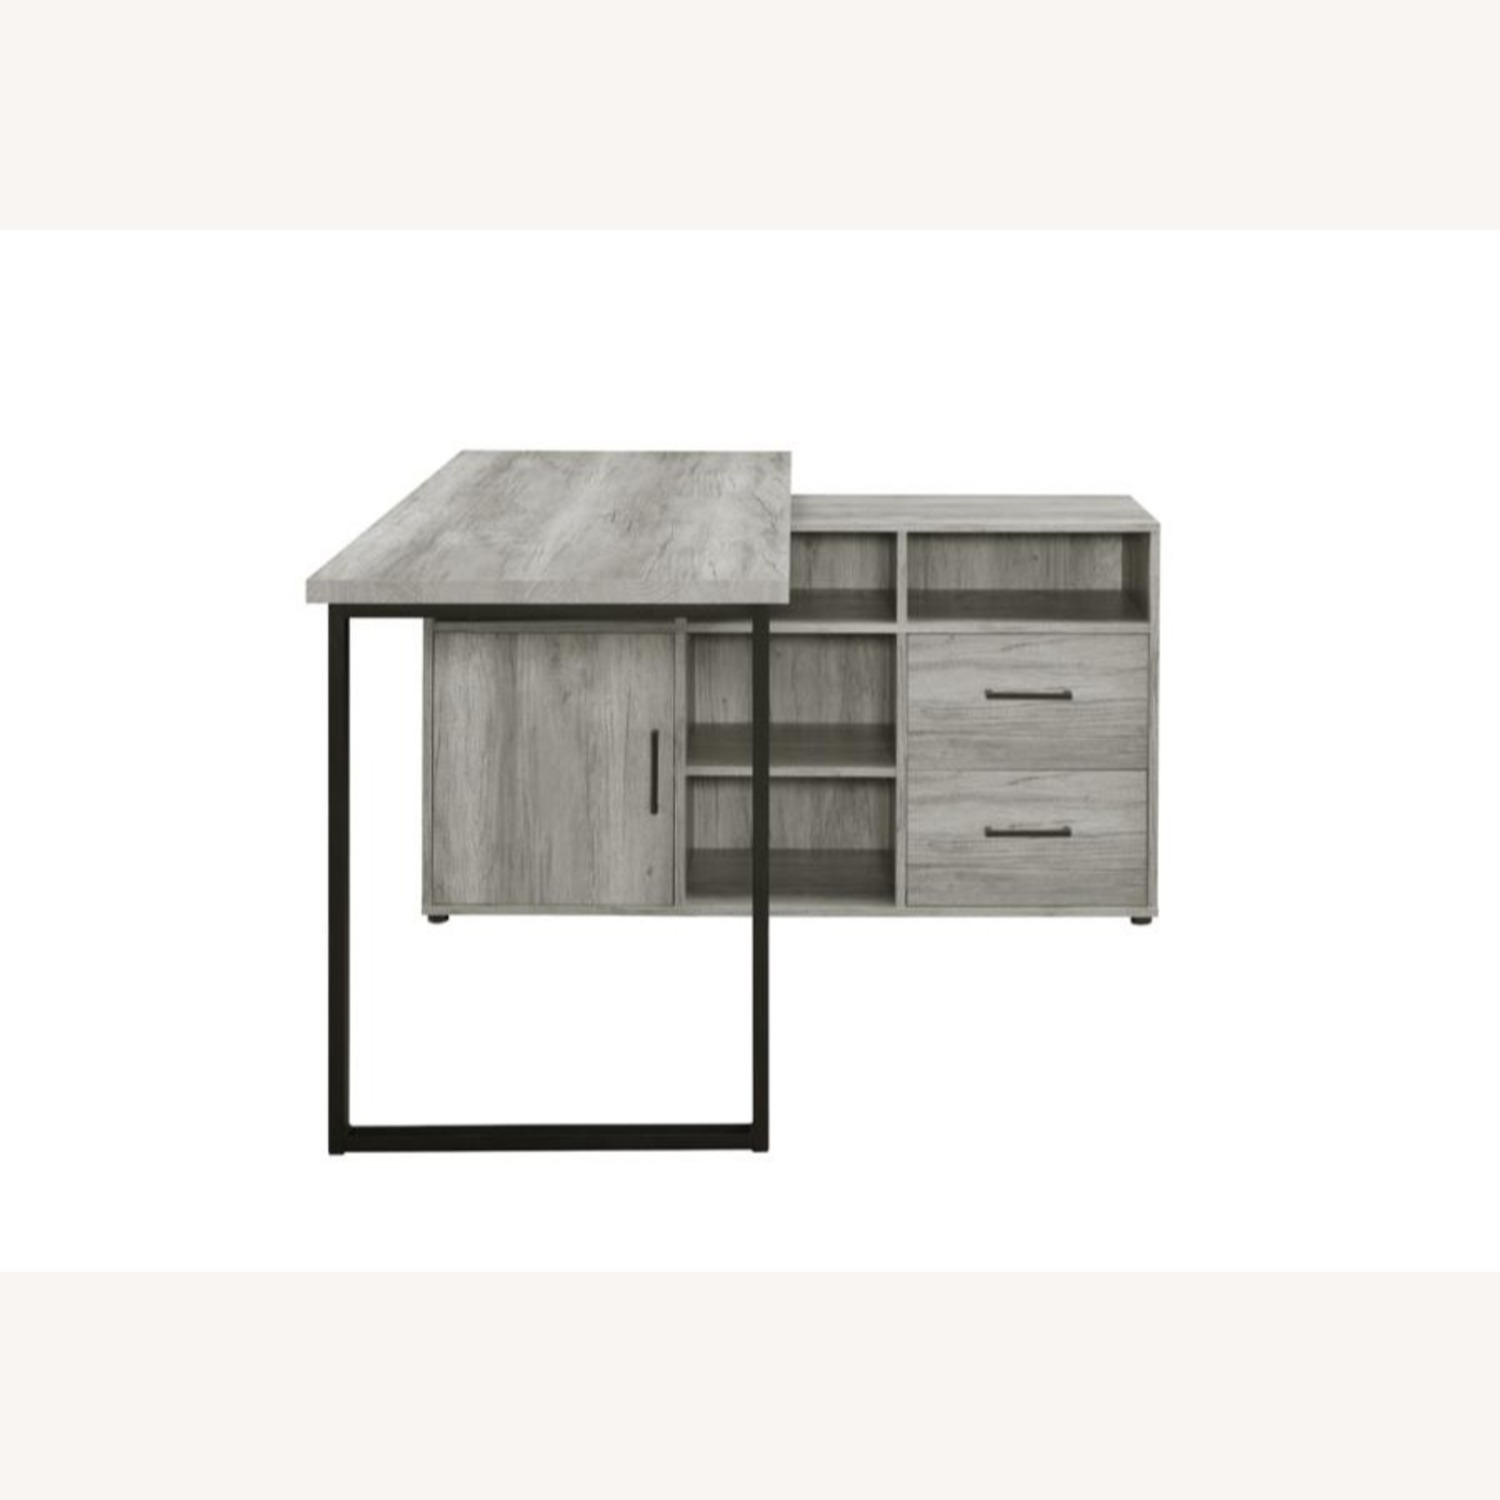 L-Shaped Office Desk In Grey Driftwood Finish - image-4